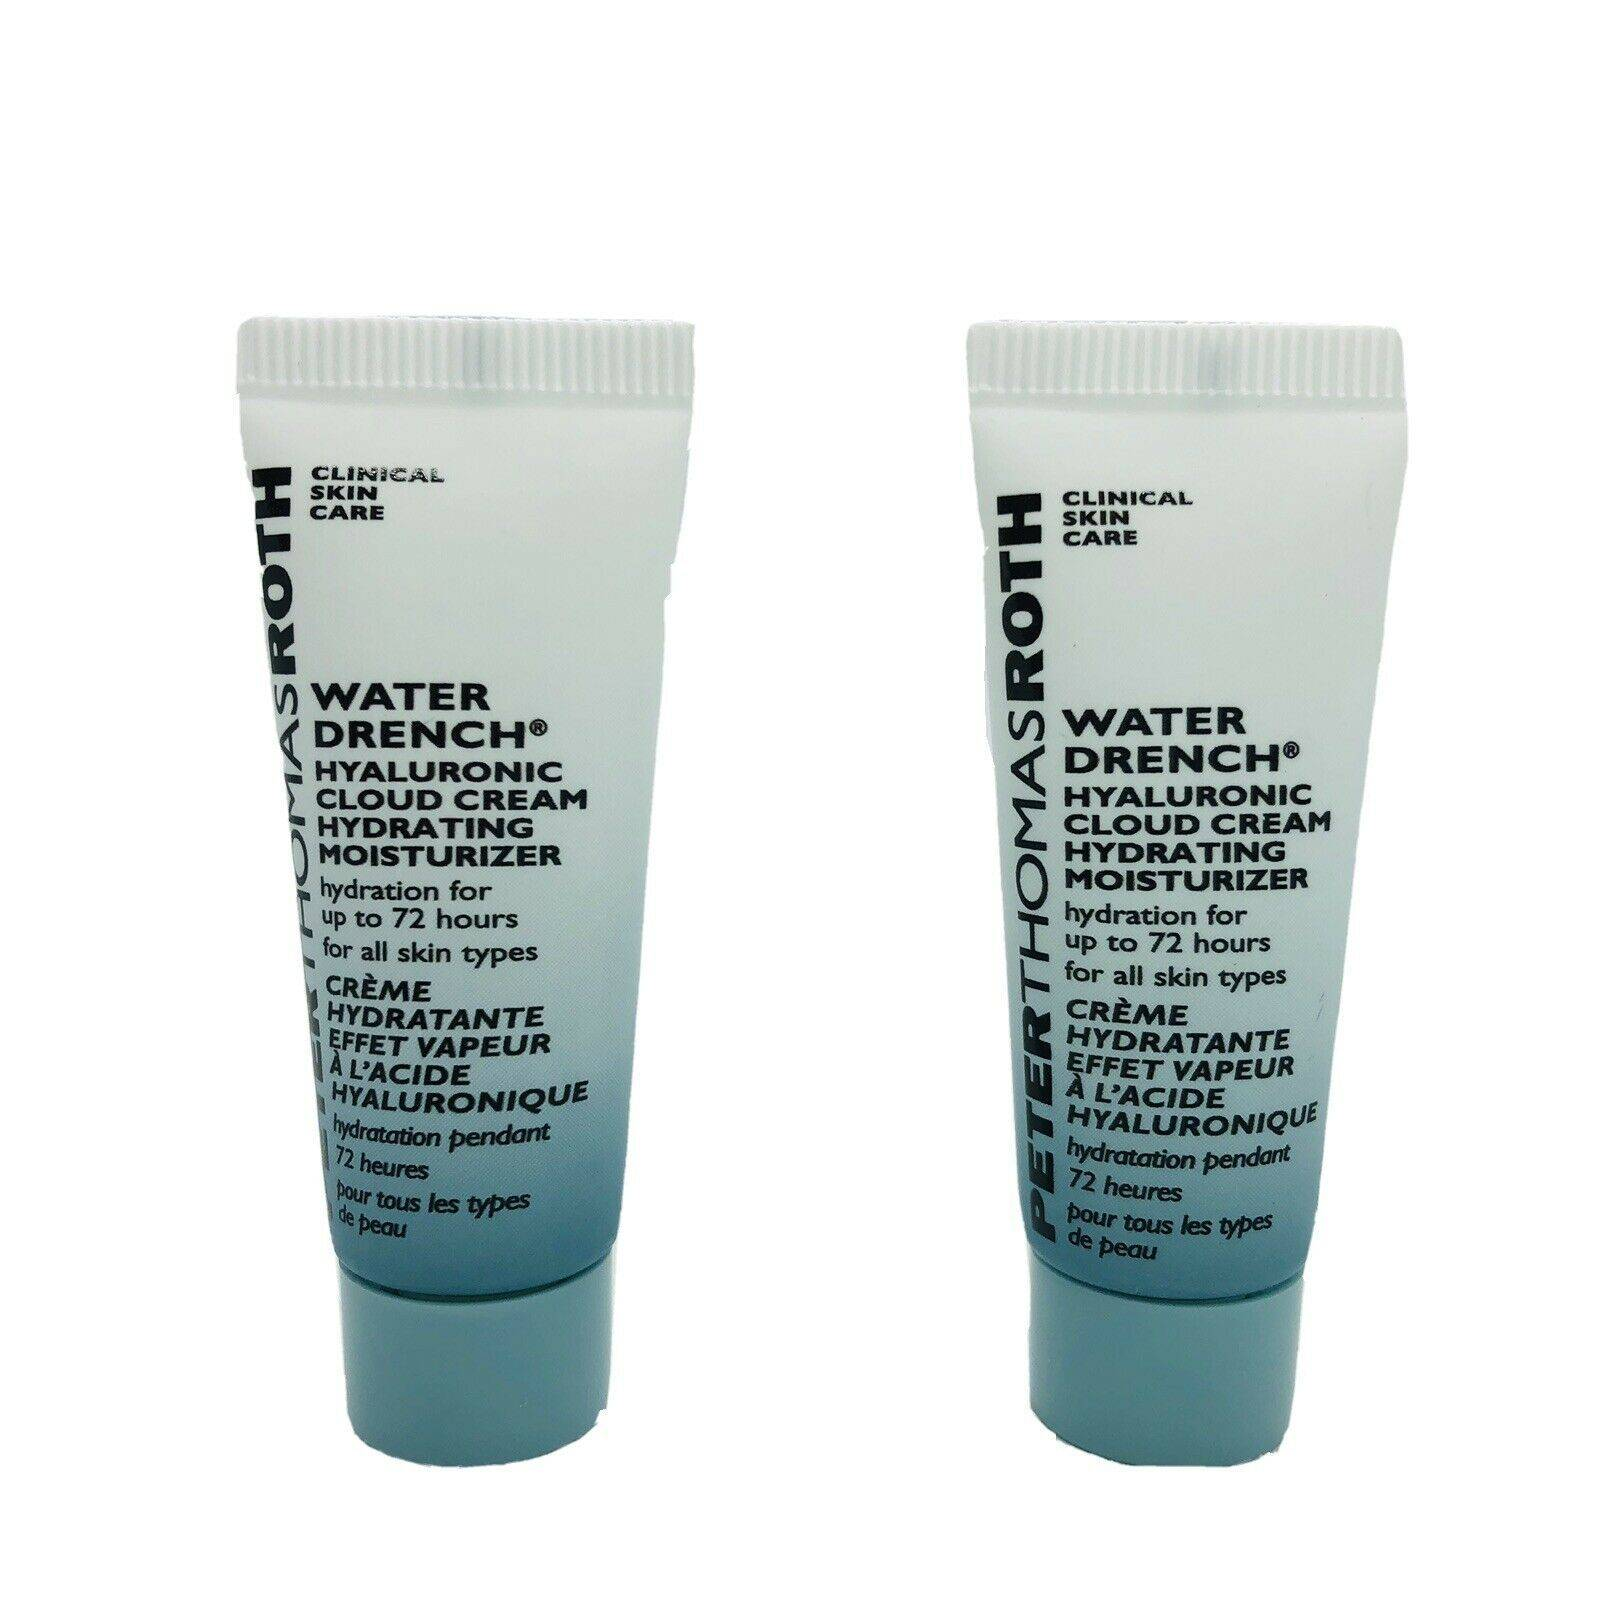 Peter Thomas Roth Hyaluronic Cloud Cream